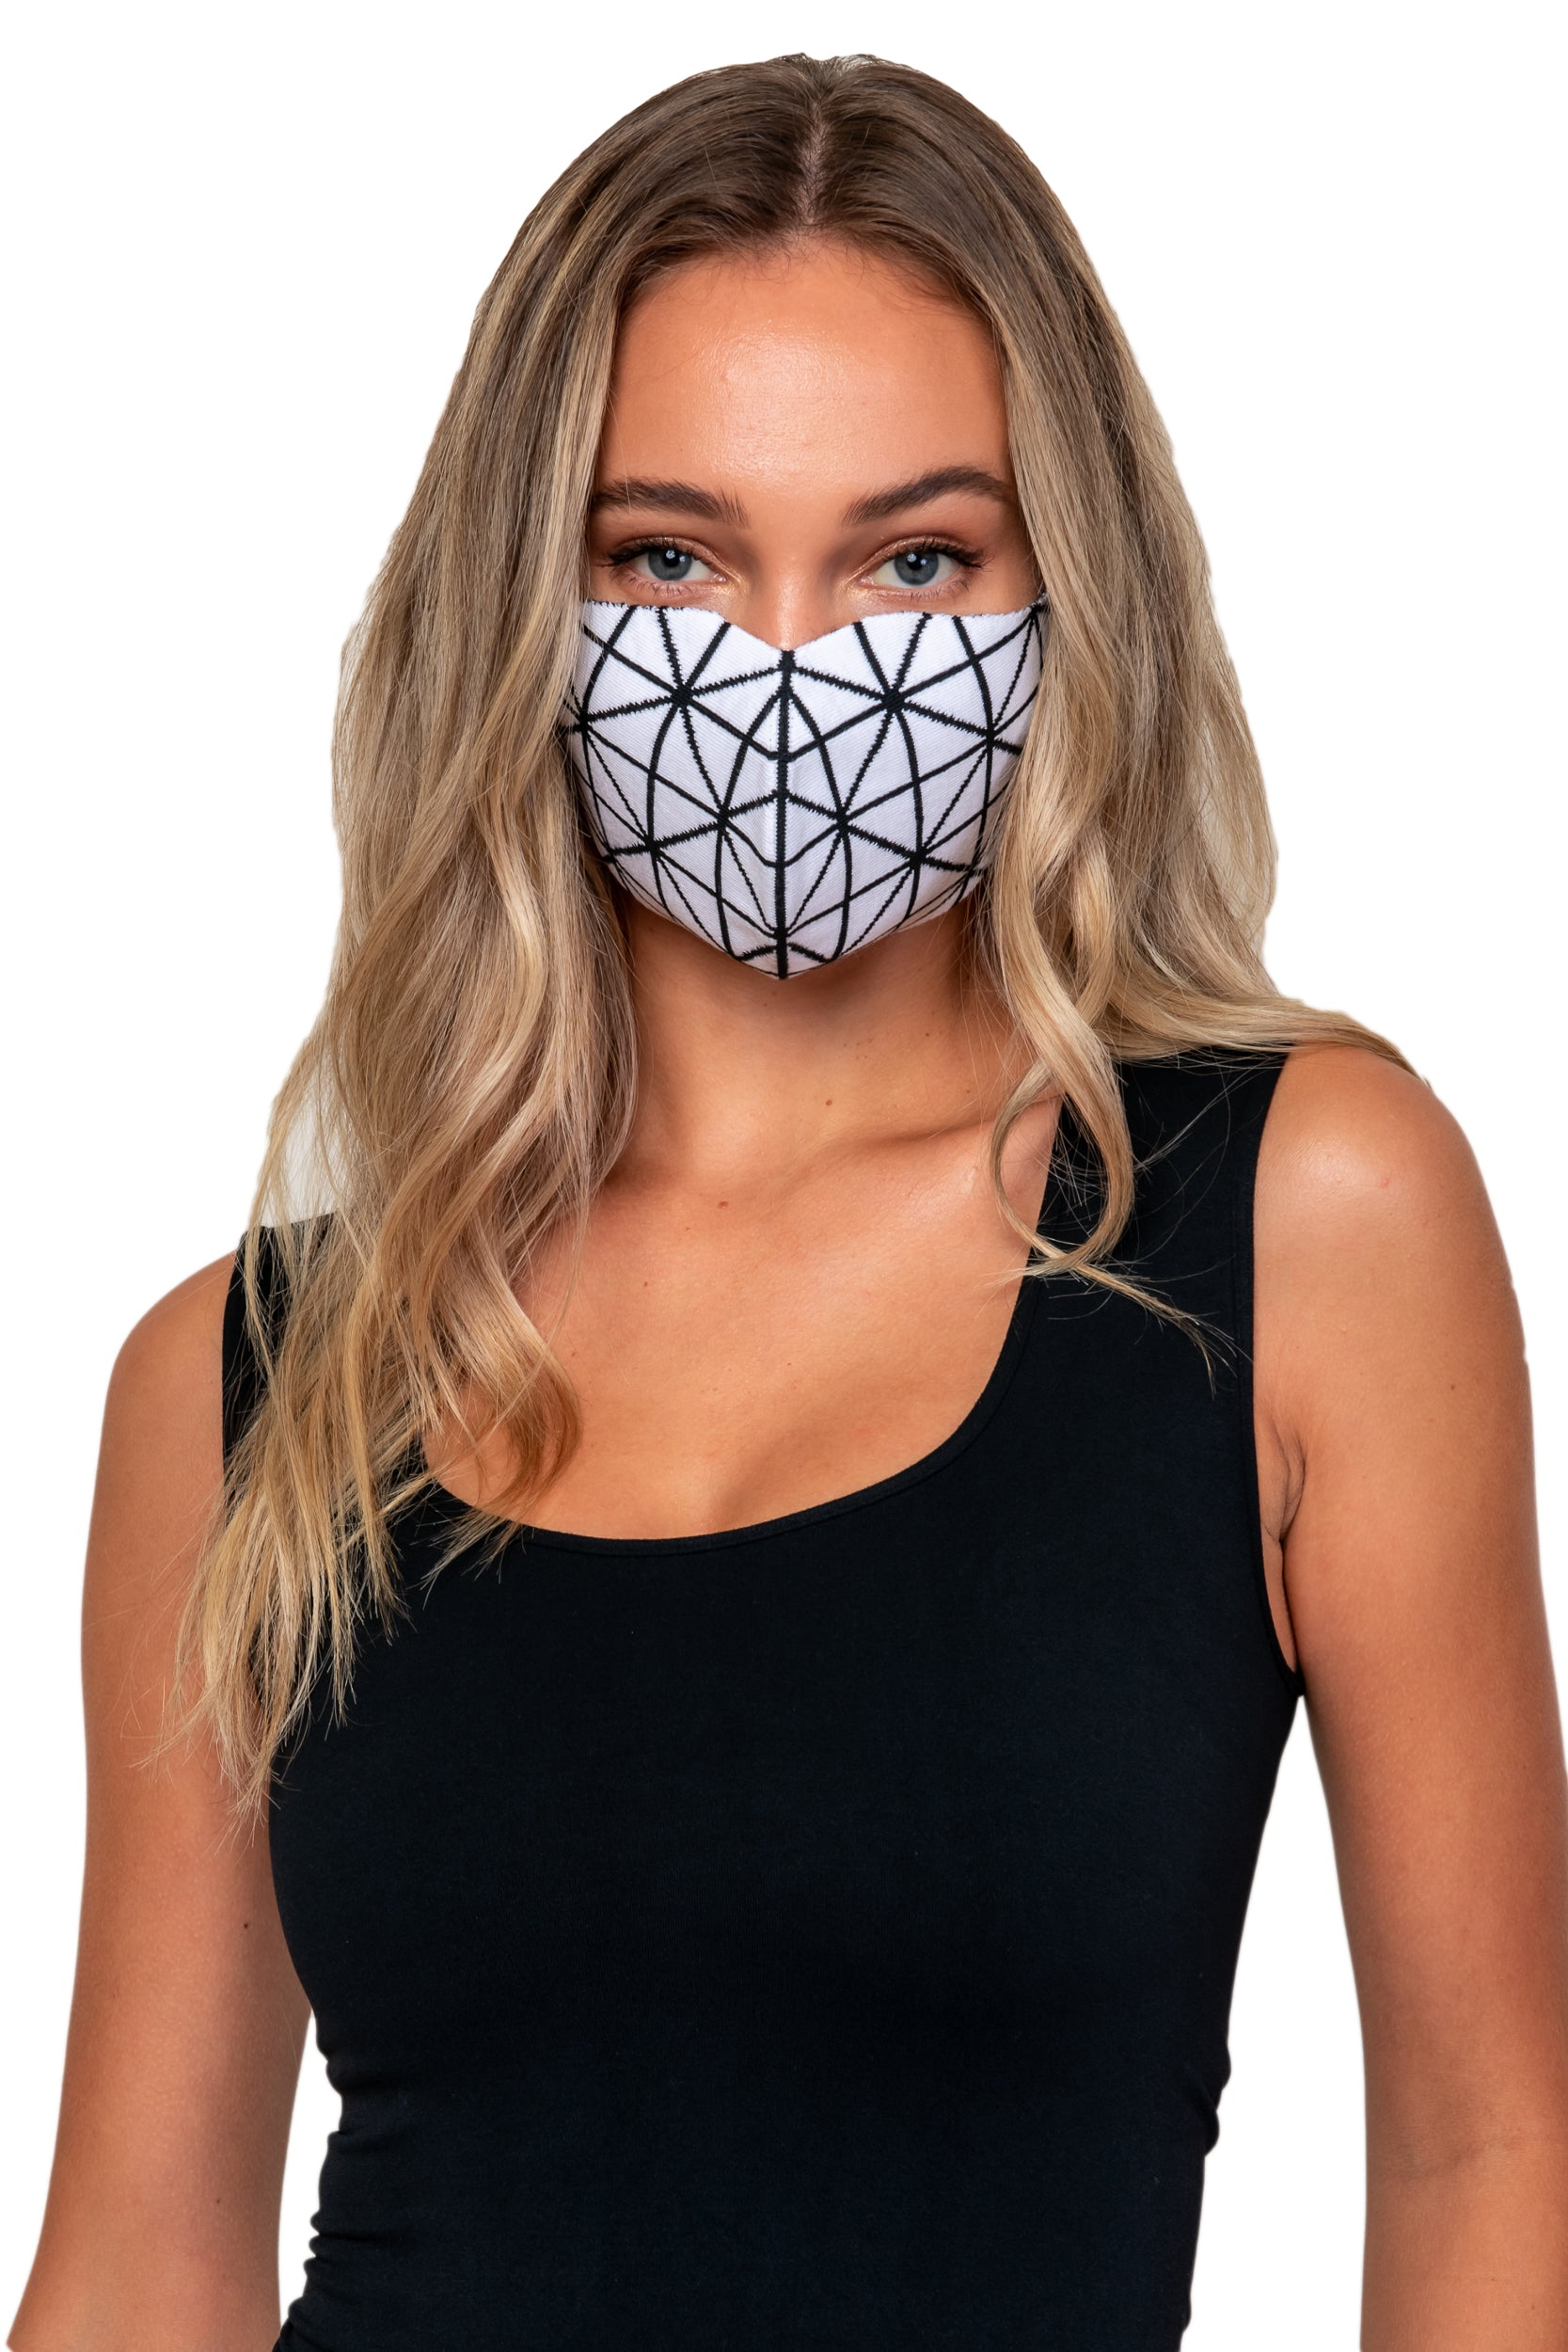 Onyx Jacquard knit reversible Mask